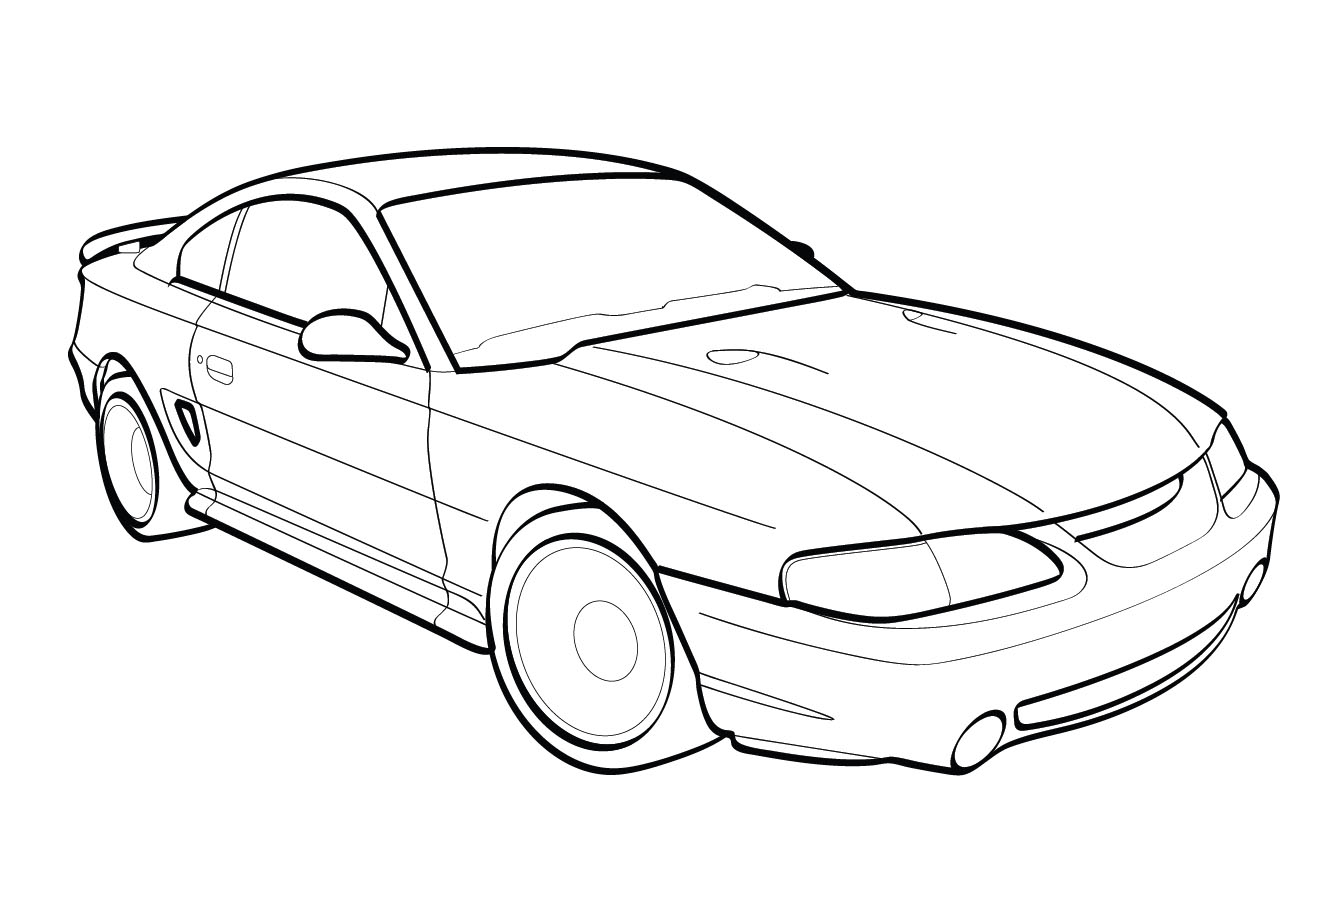 1323x906 Vector Line Drawing Of A 1998 Ford Cobra Mustang Trashedgraphics